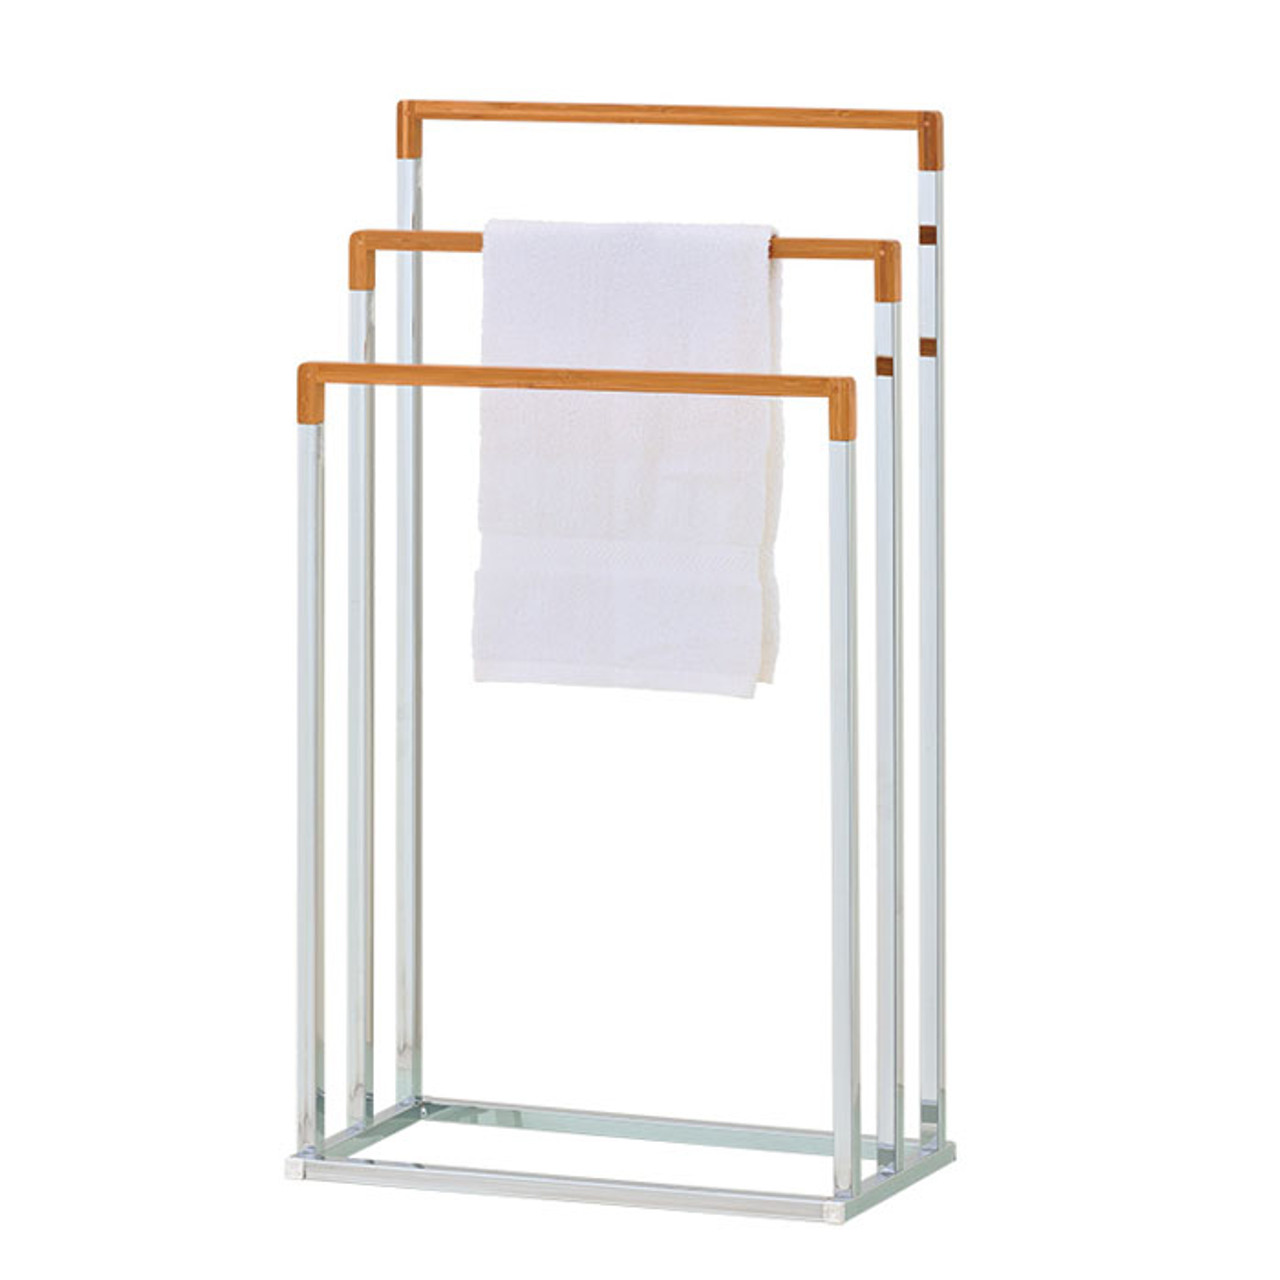 Bamboo Towel Stand Solutions Your Organized Living Store